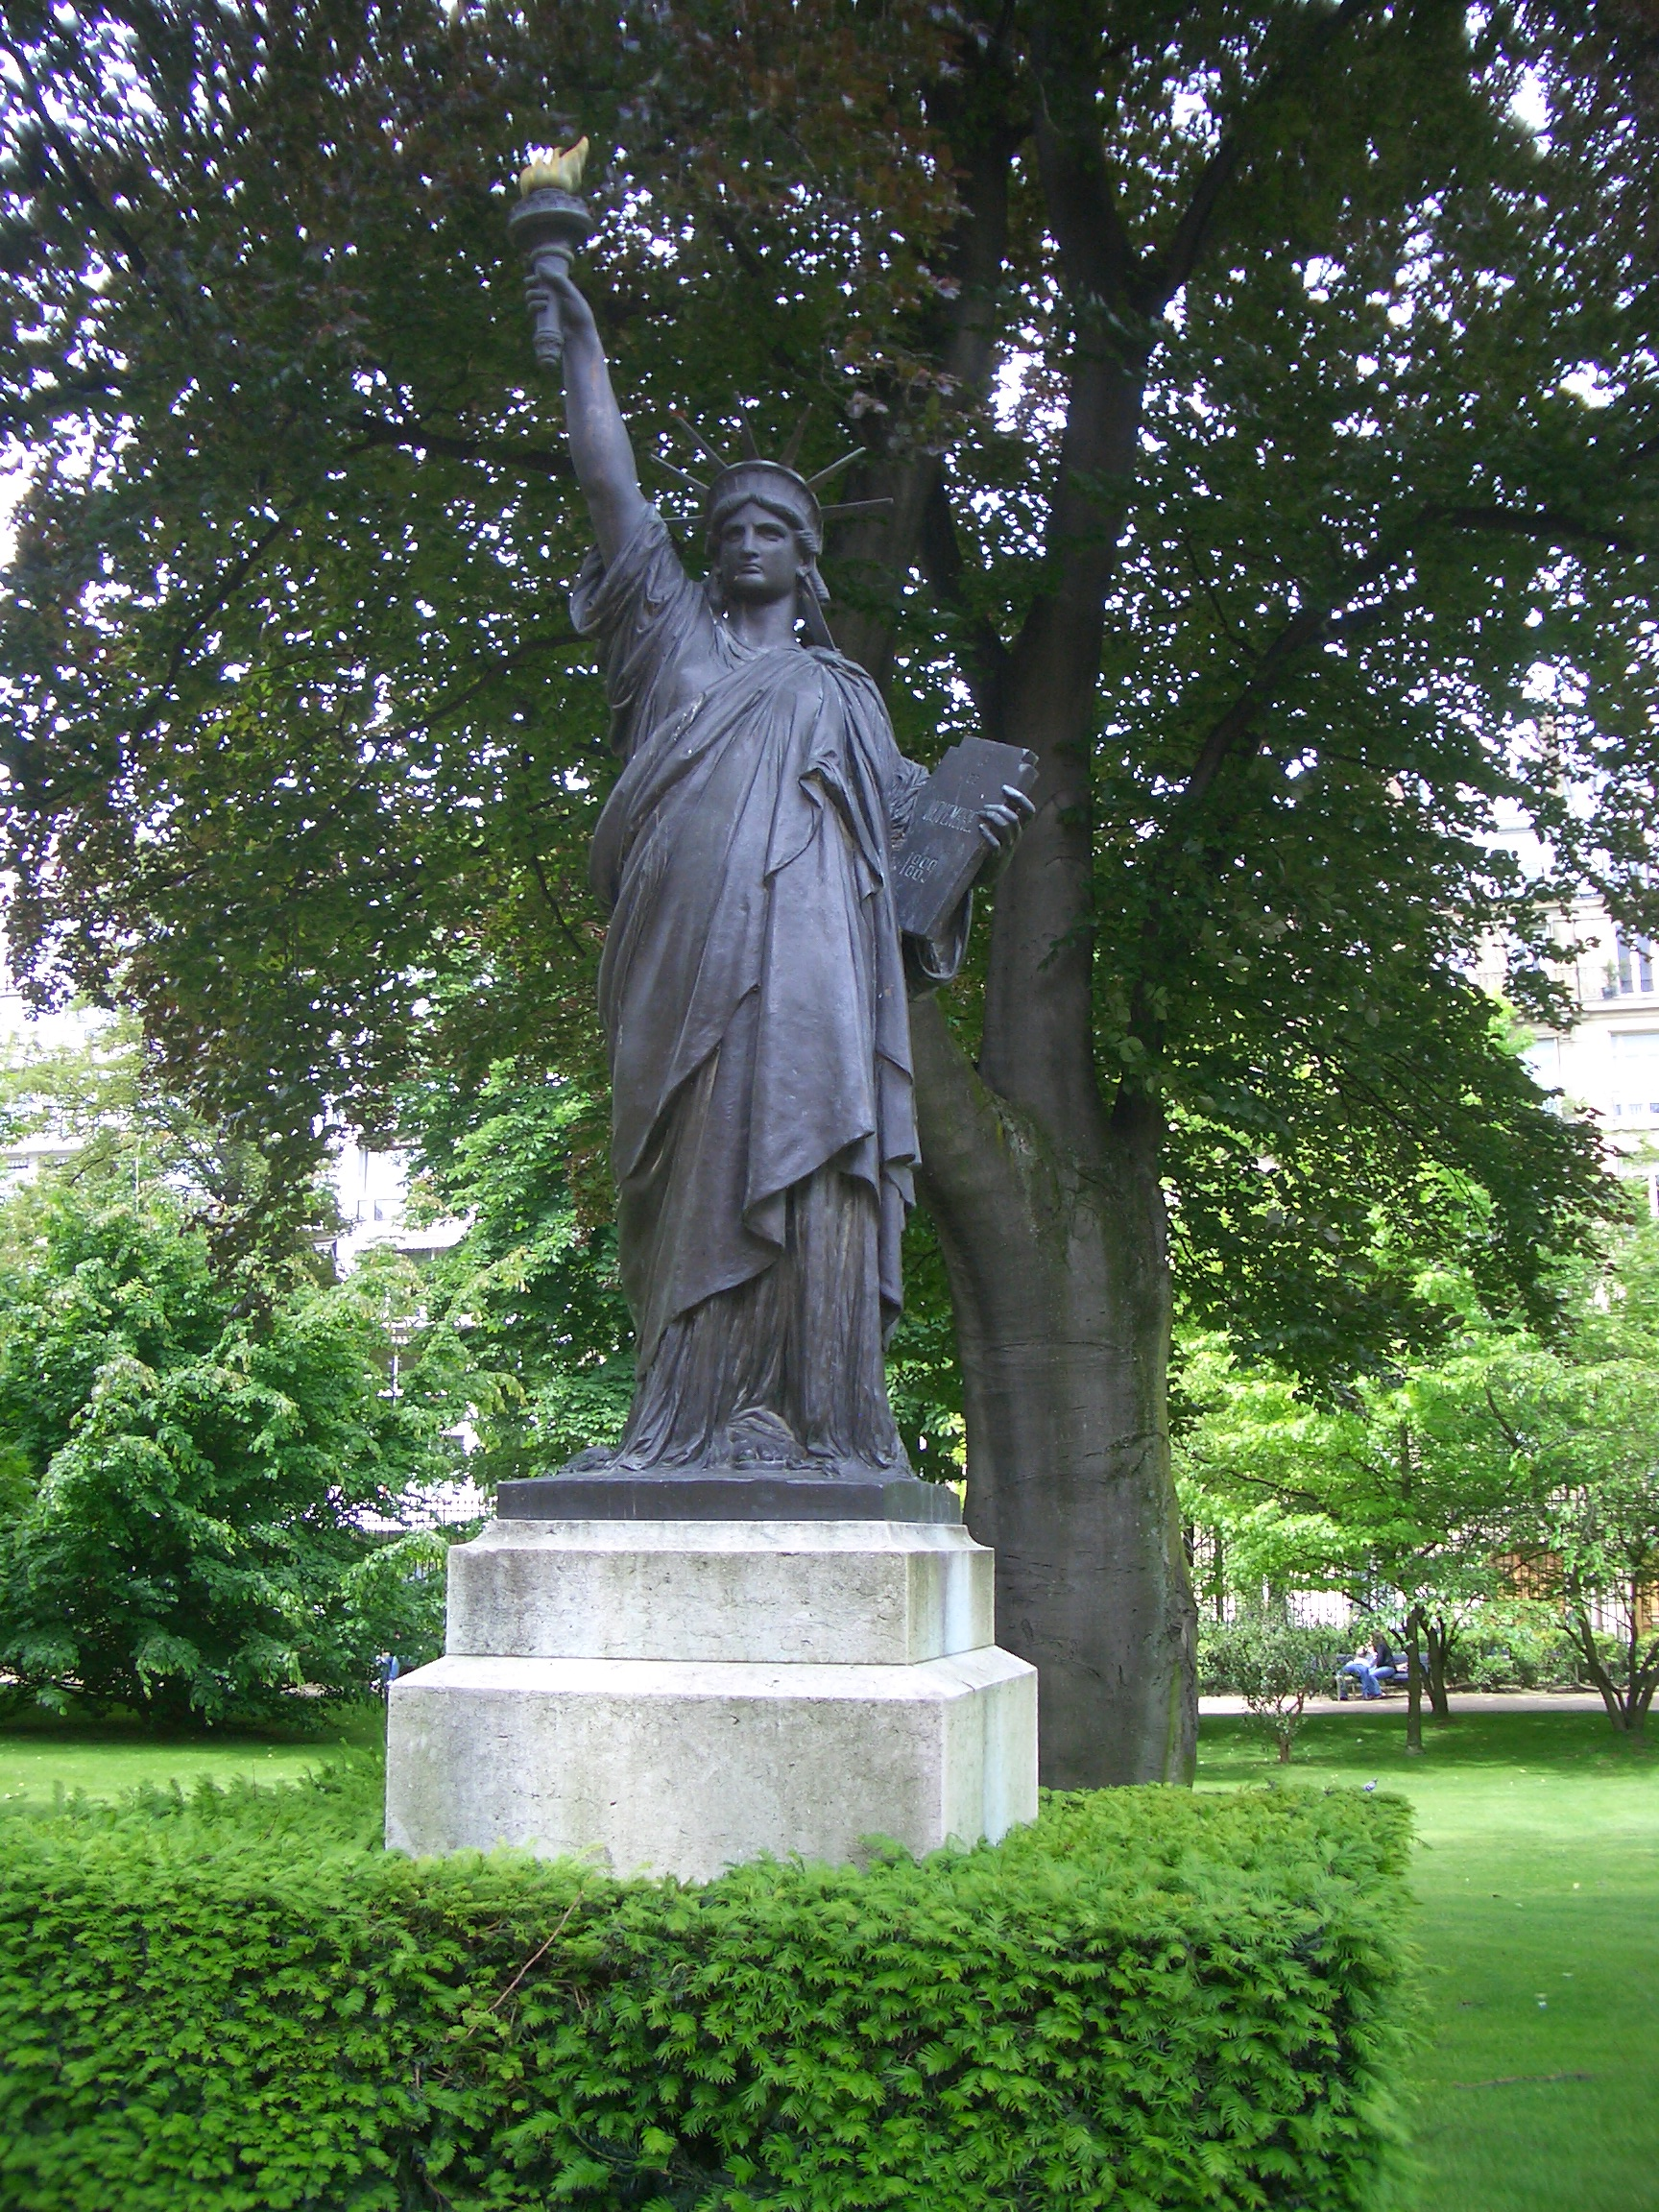 Statue of liberty in luxembourg gardens garden designs - Jardin du luxembourg statue of liberty ...